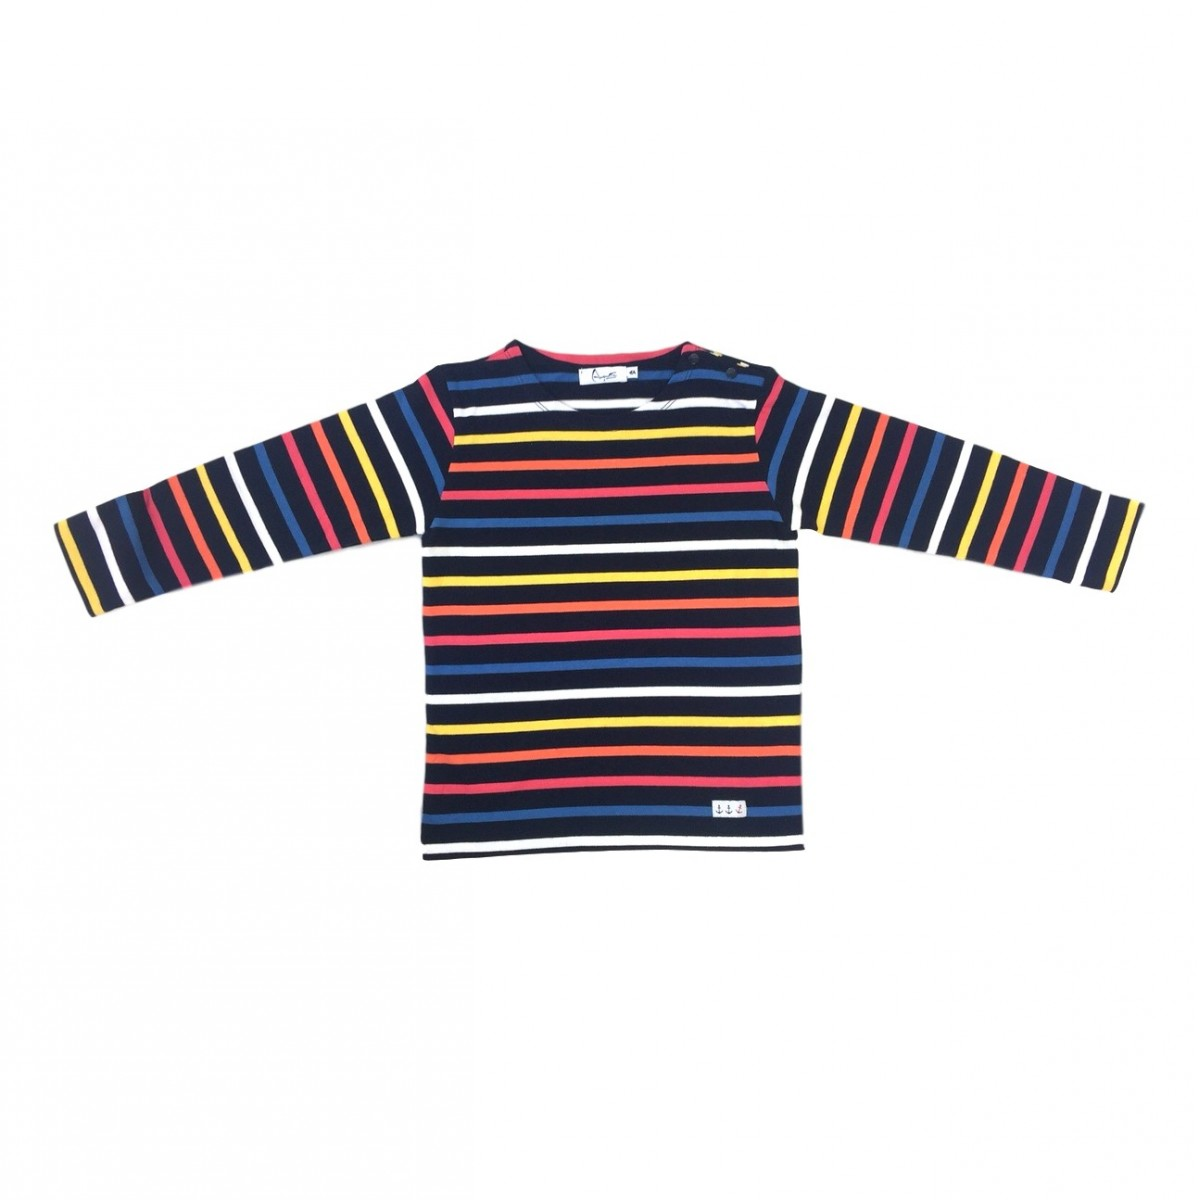 https://www.boutique-augustin.com/1258-thickbox/mariniere-manches-longues-bebe-et-enfant-rayees.jpg